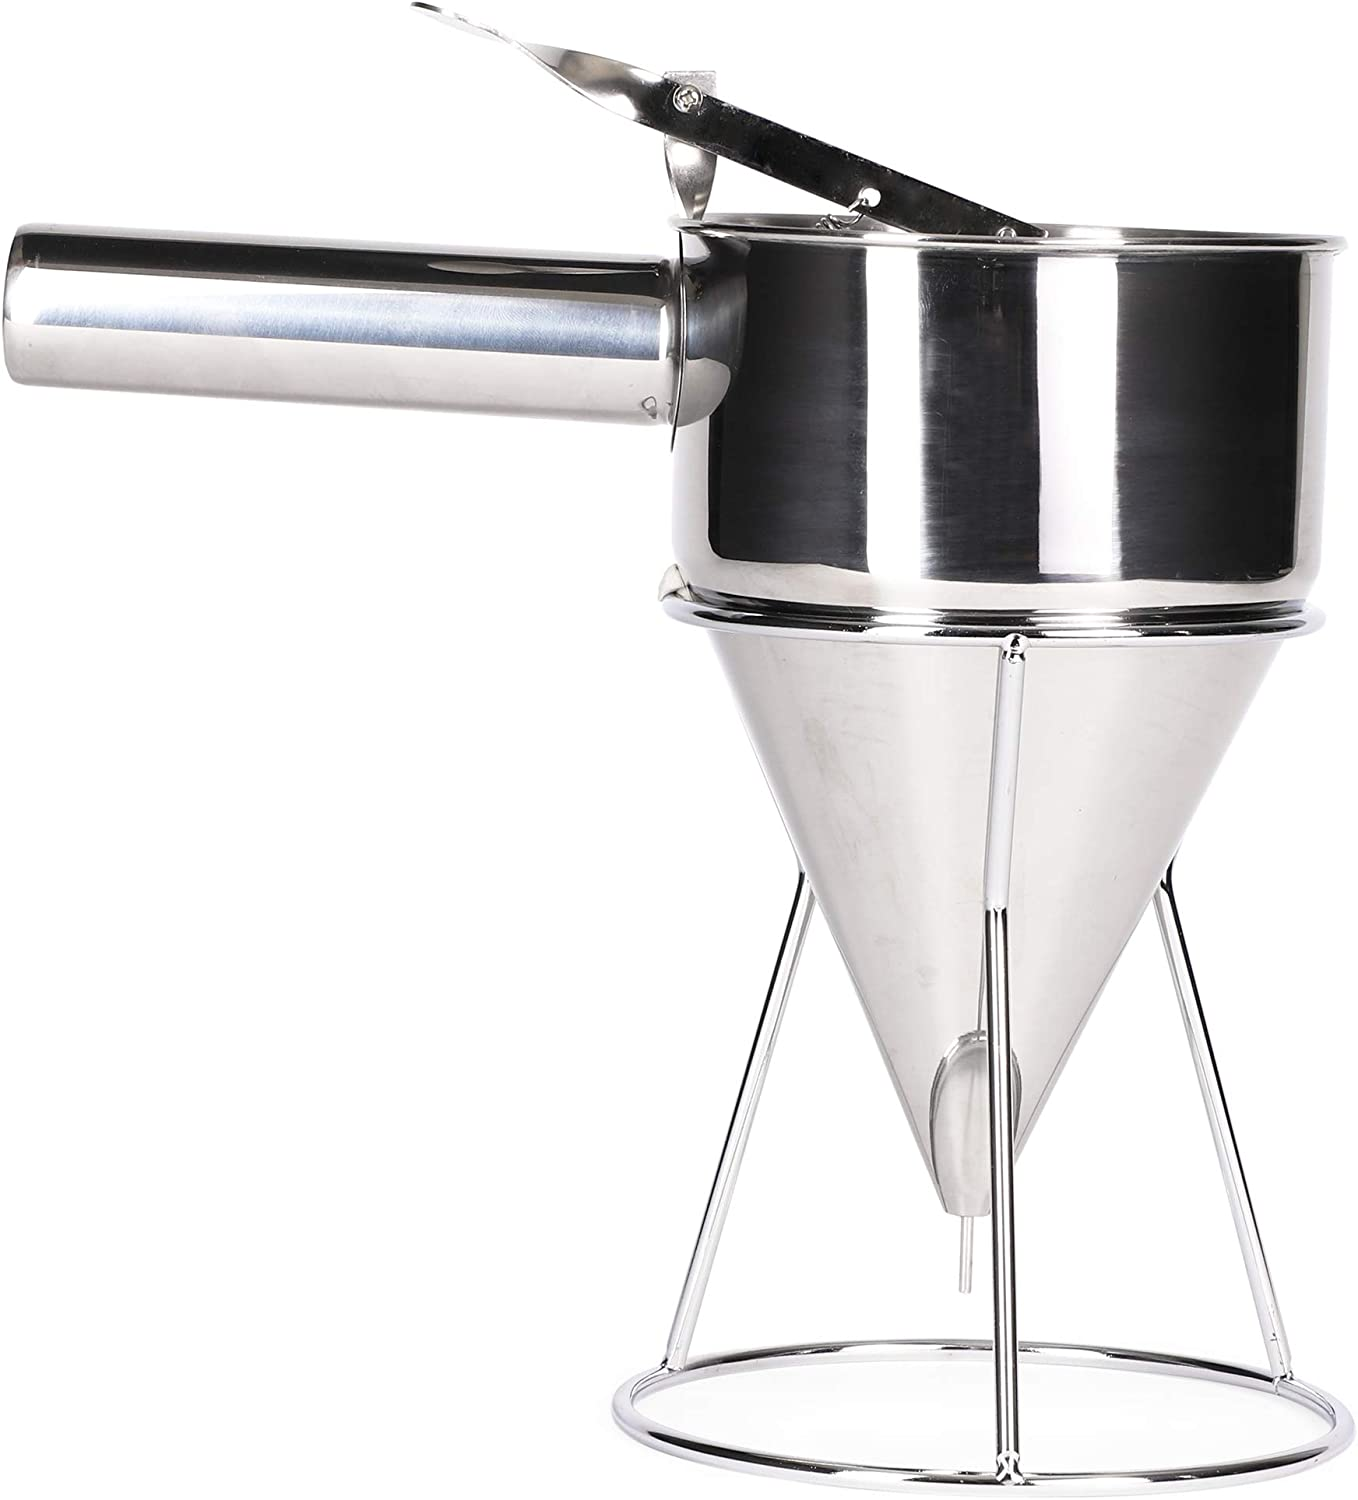 Juvale Professional Pancake Batter Dispenser (10 x 10 in, Stainless Steel, 4 Cups)